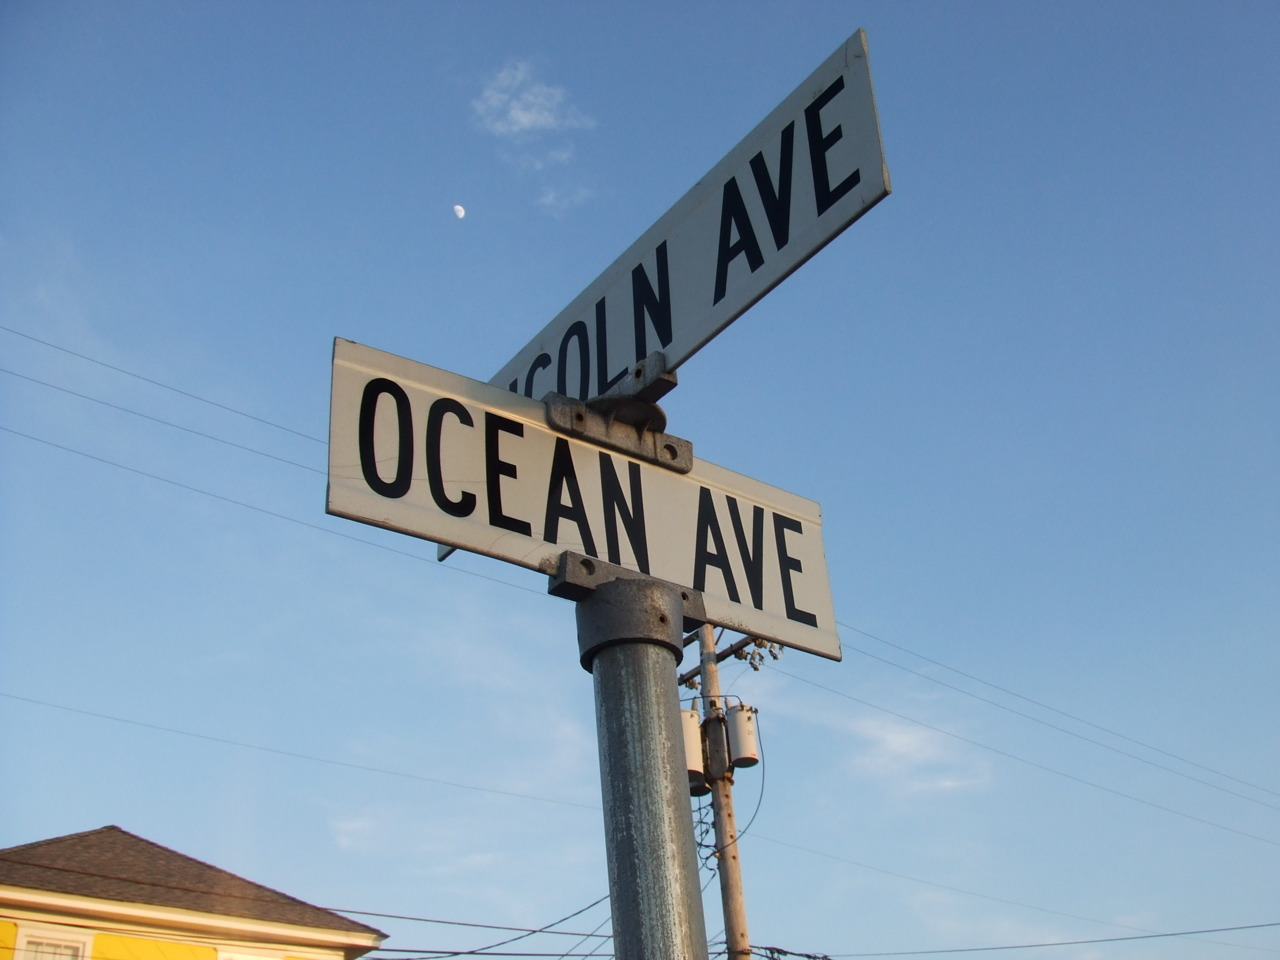 There's a place off Ocean Avenue where I used to sit and talk with you…